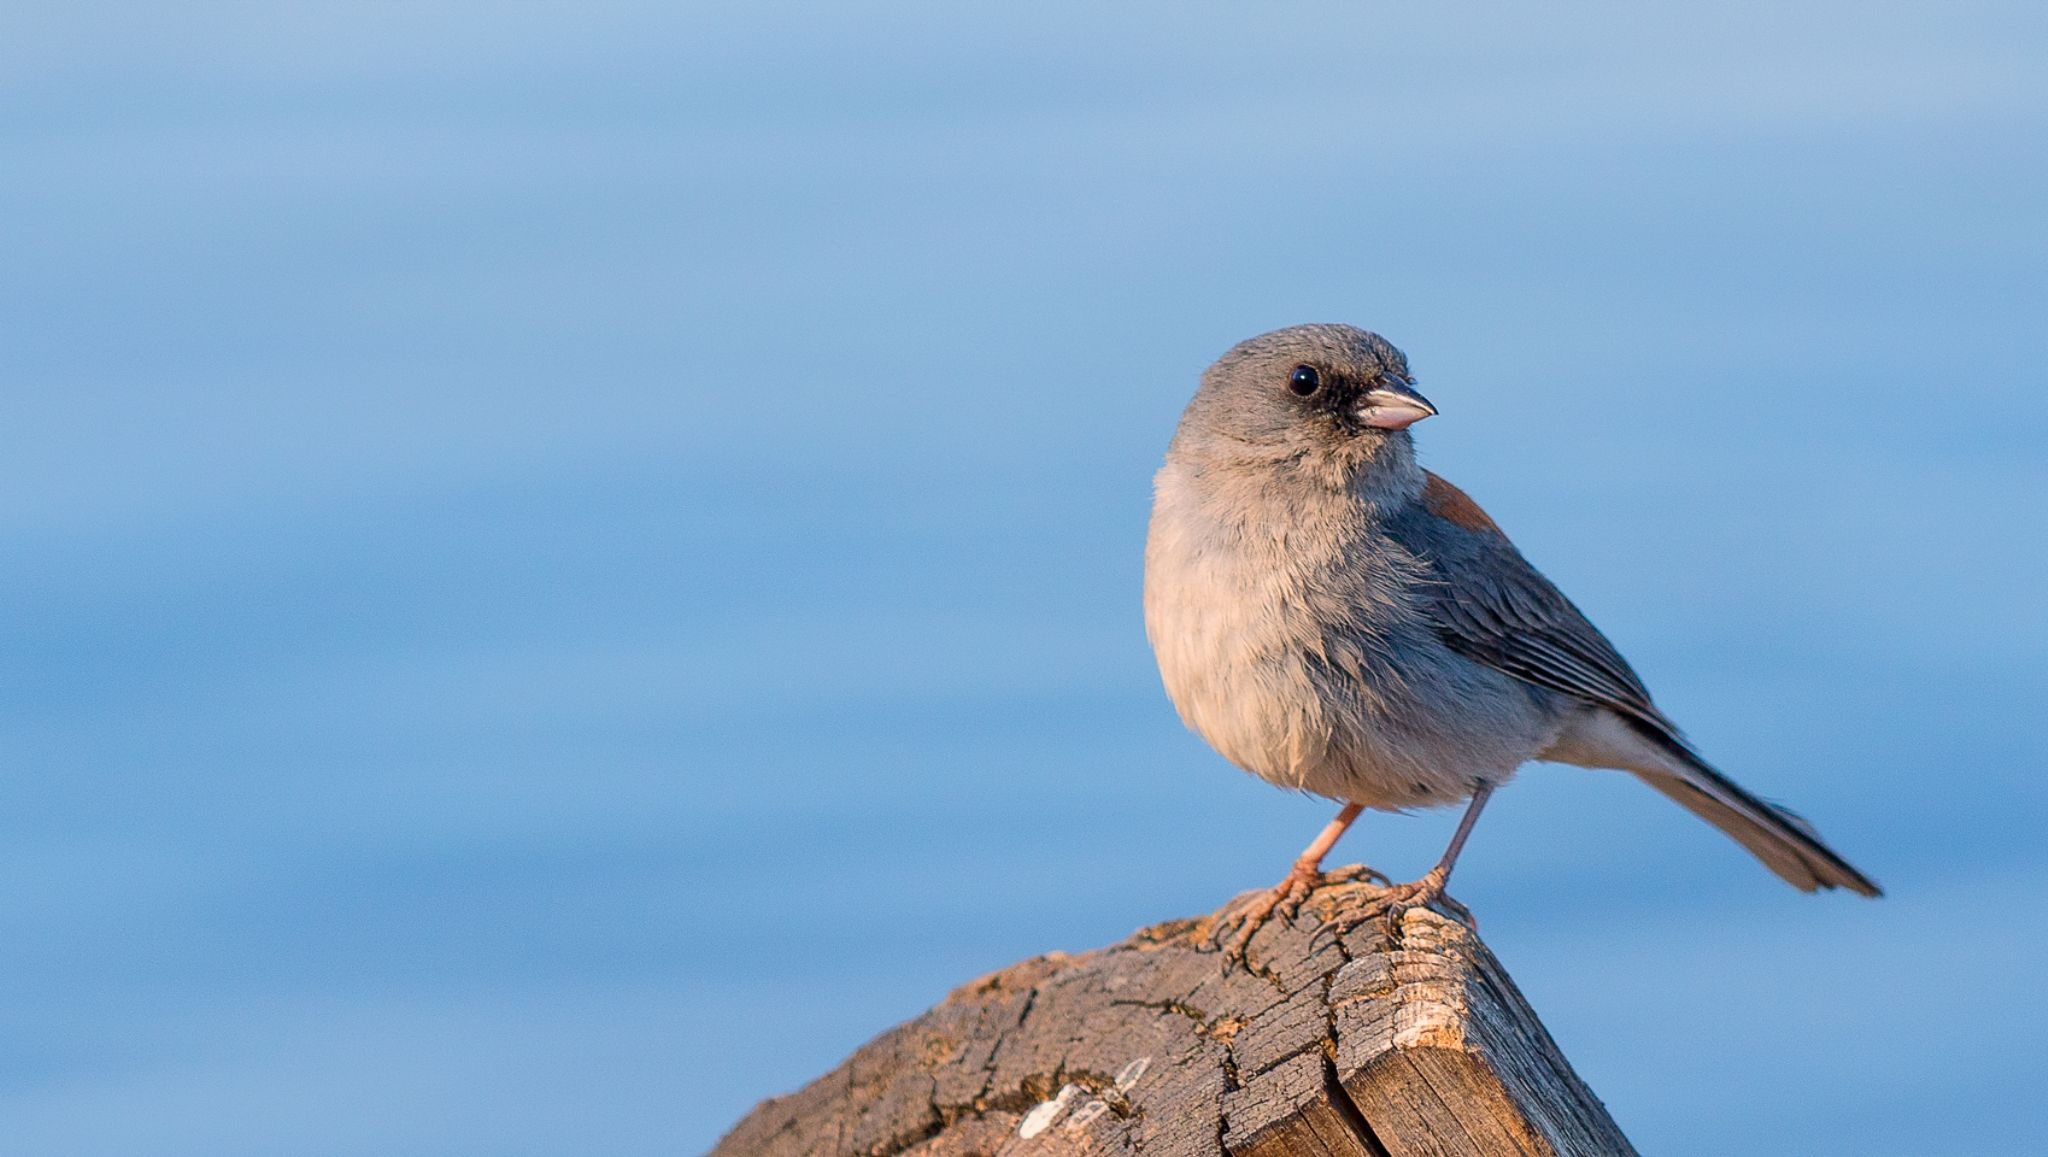 gray headed junco by dnphotographyspasovici